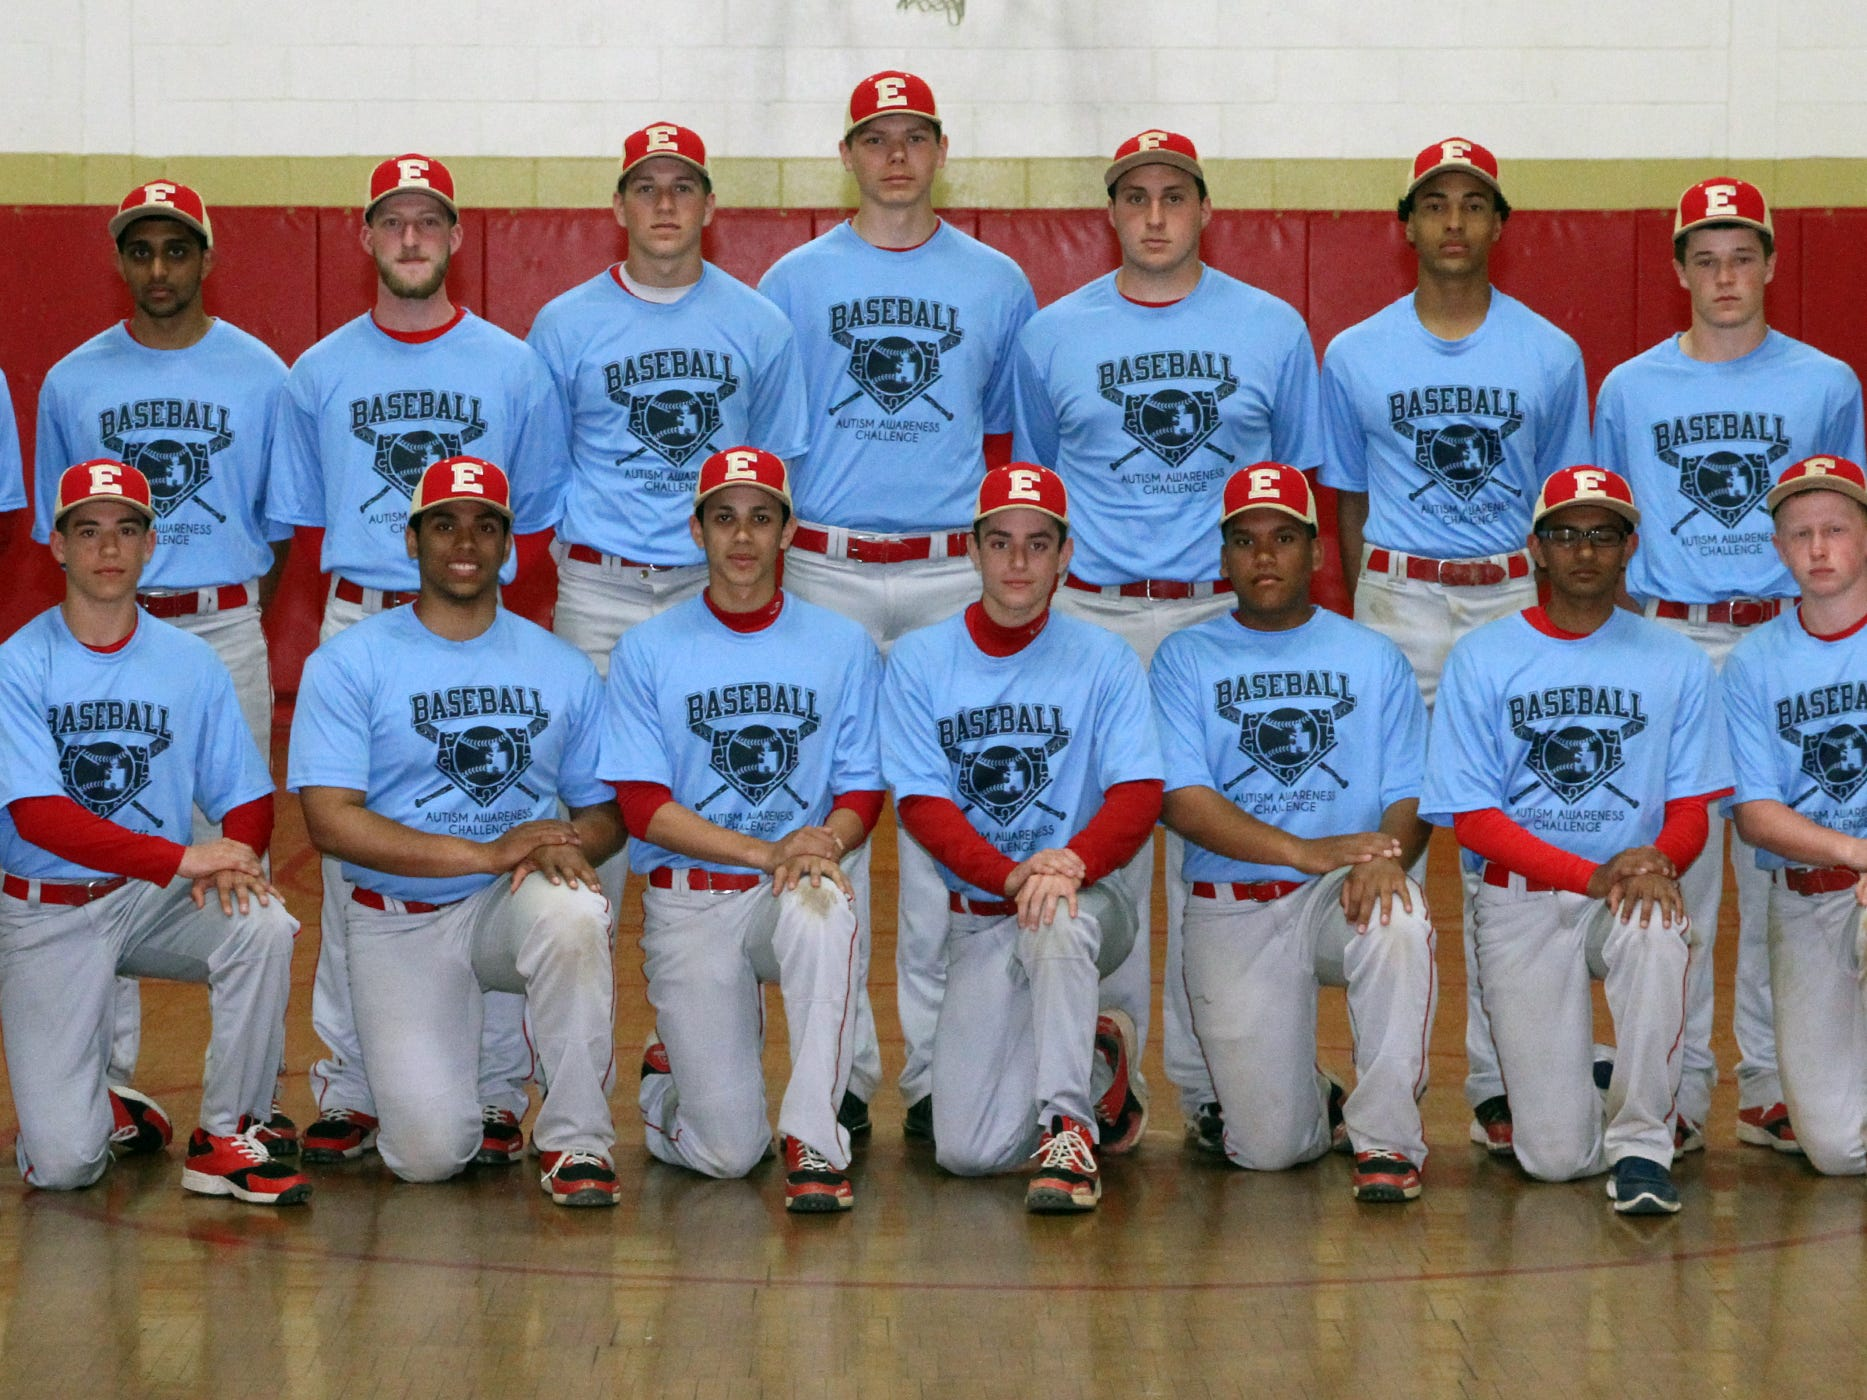 Edison High School baseball players wearing their T-shirts for the upcoming Autism Awareness Baseball Challenge.